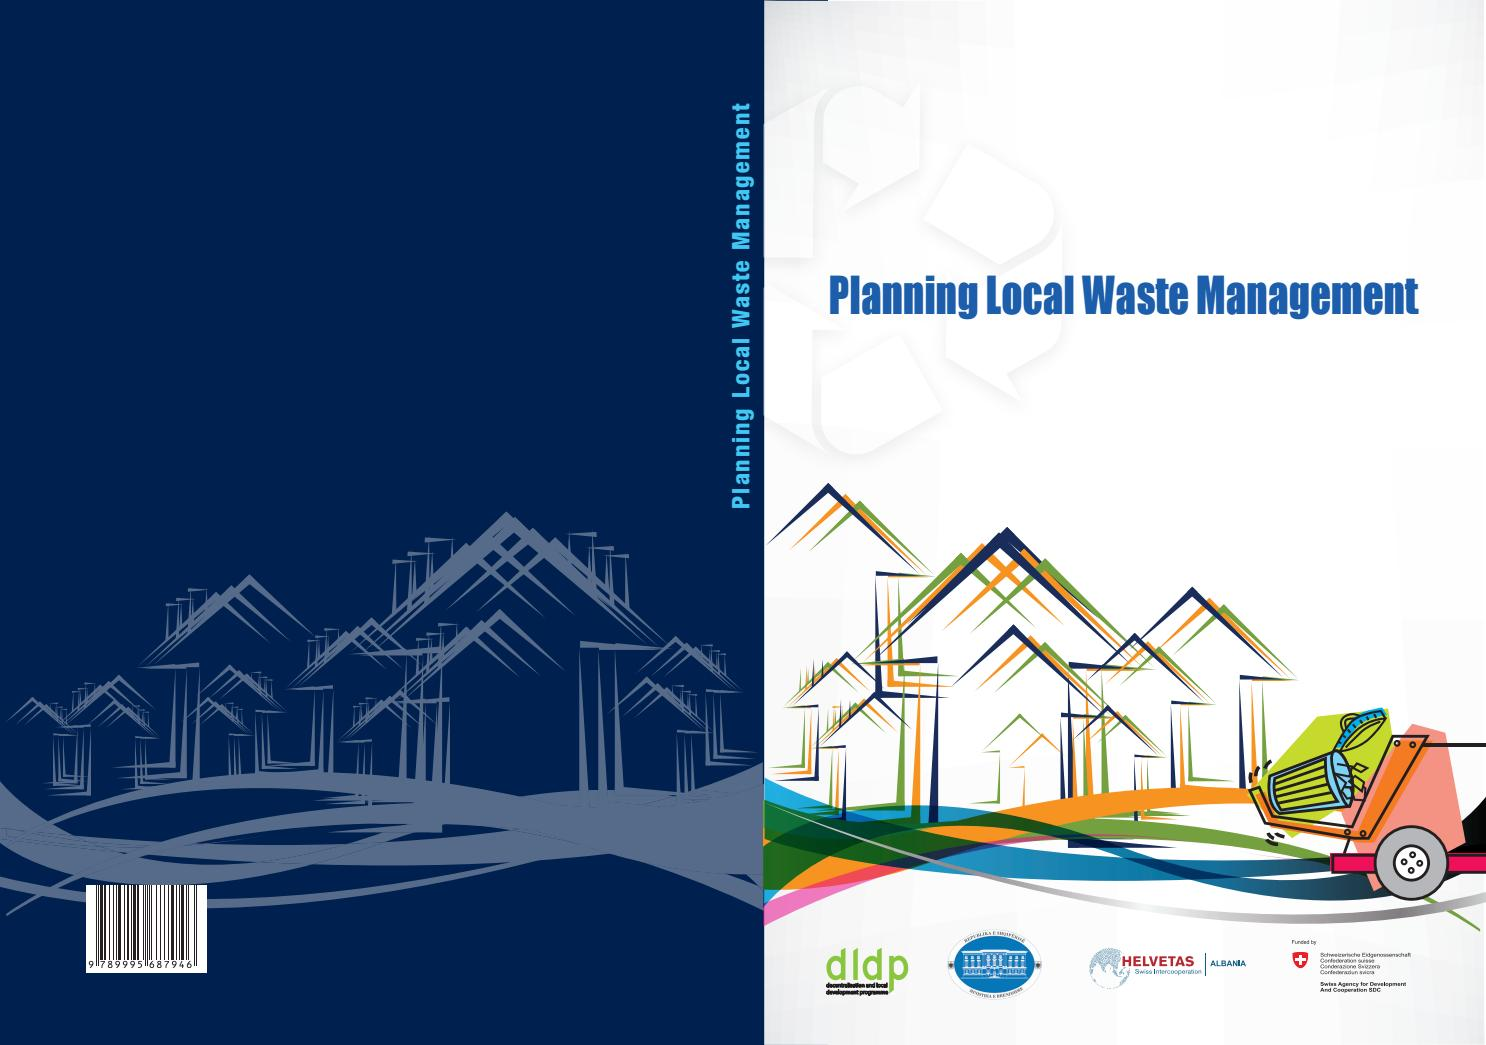 Planning for Local Waste Management - Manual by Co-PLAN - issuu